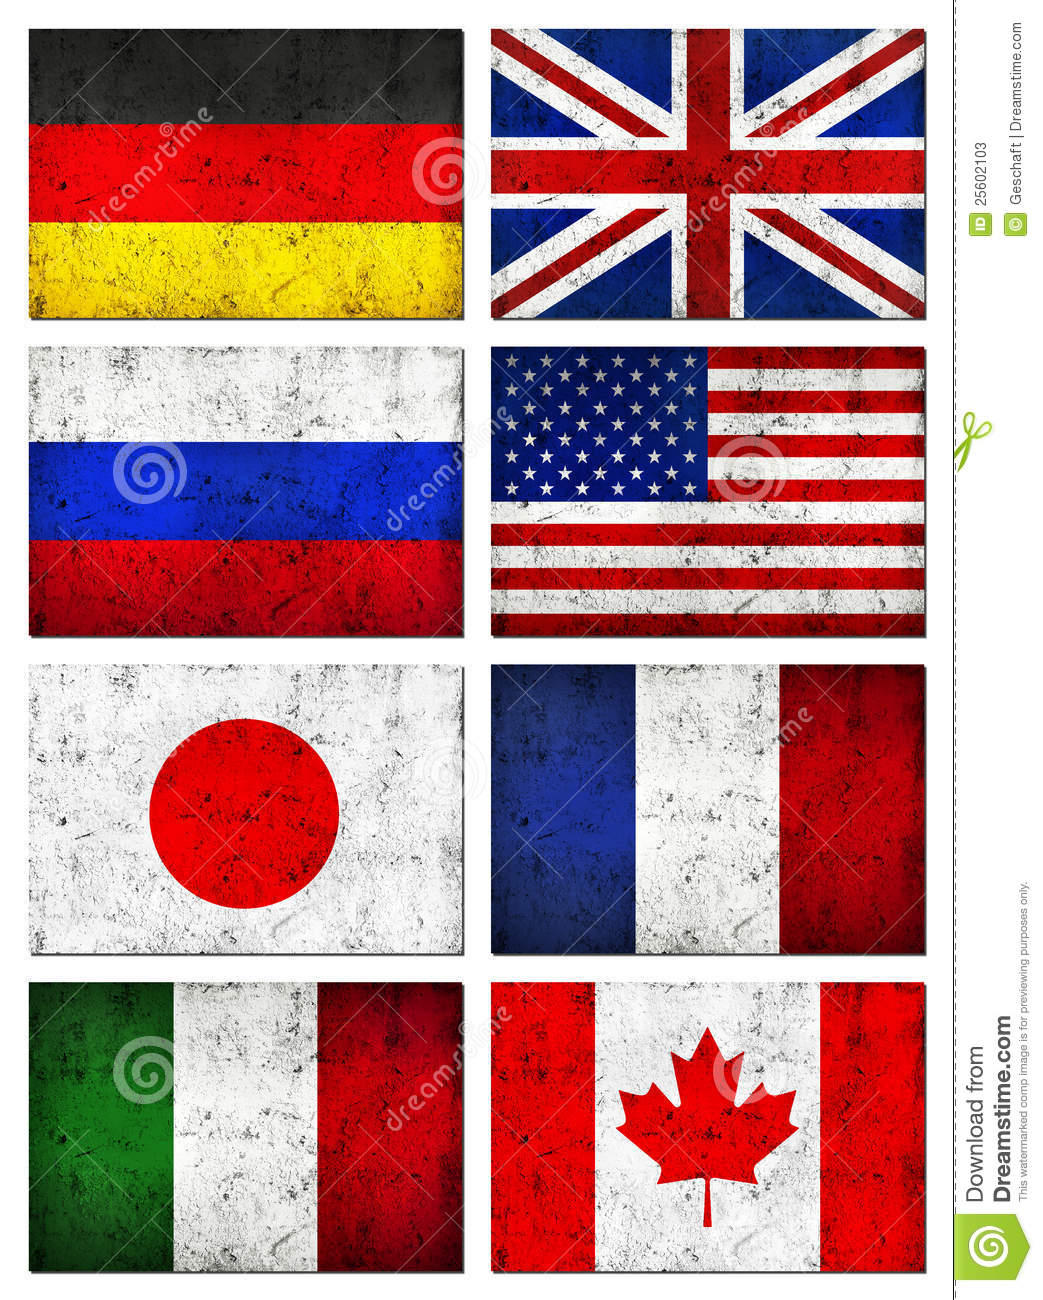 Grunge Dirty Great 8 (G8) Countries Flag Stock Image